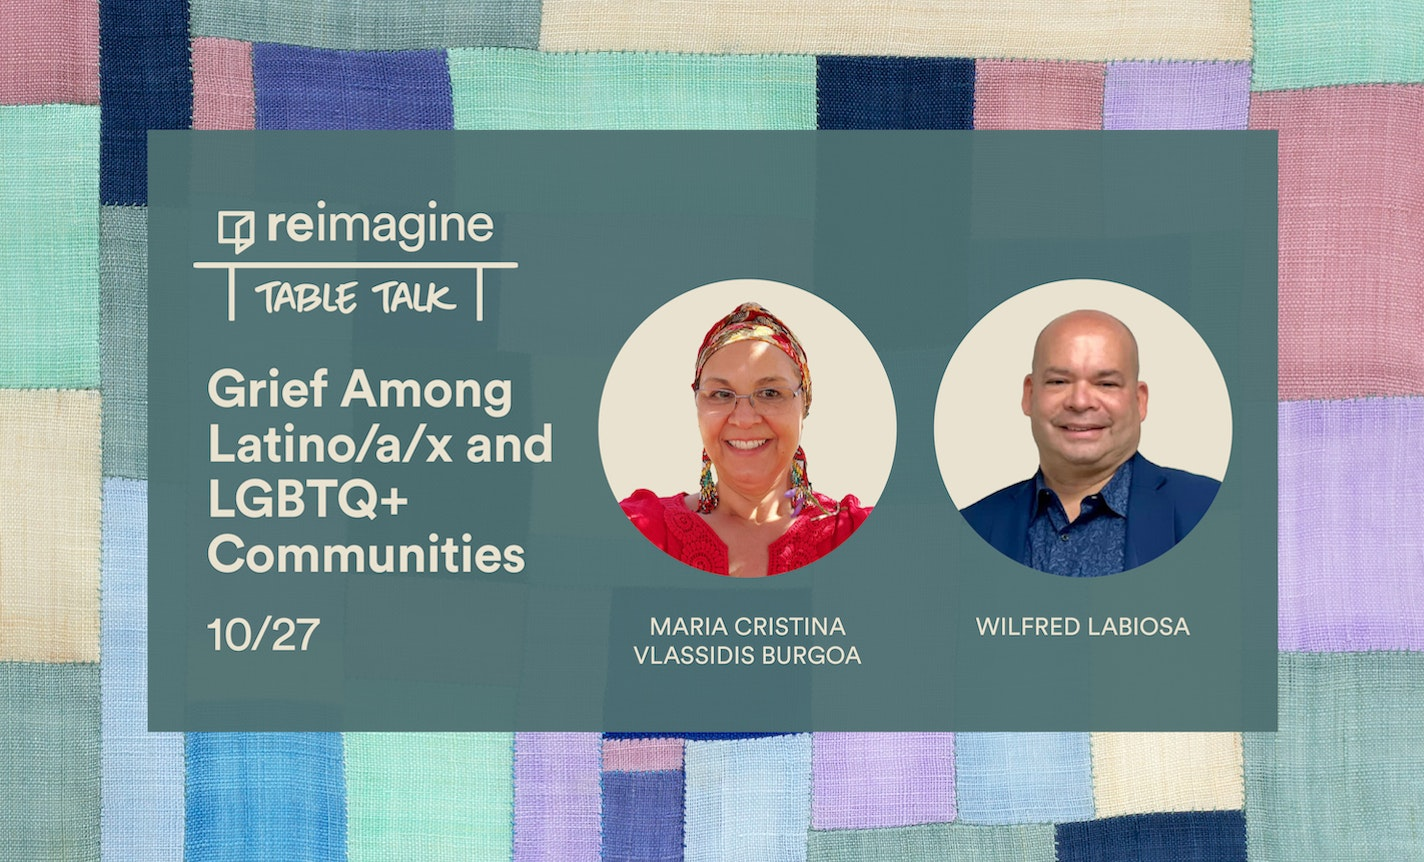 Table Talk: Grief Among Latino/a/x and LGBTQ+ Communities